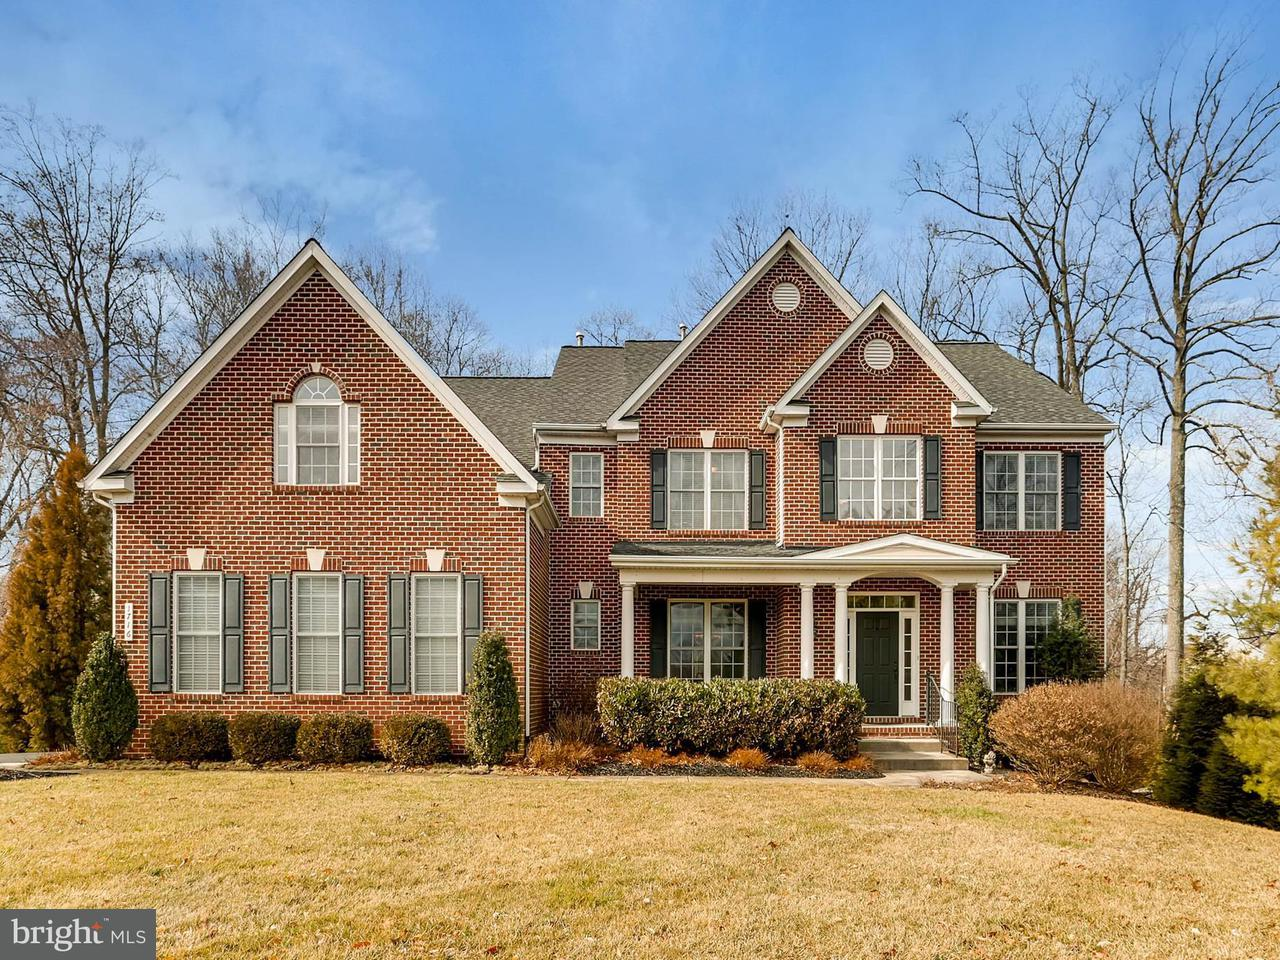 Single Family Home for Sale at 1716 Beechview Court 1716 Beechview Court Bel Air, Maryland 21015 United States